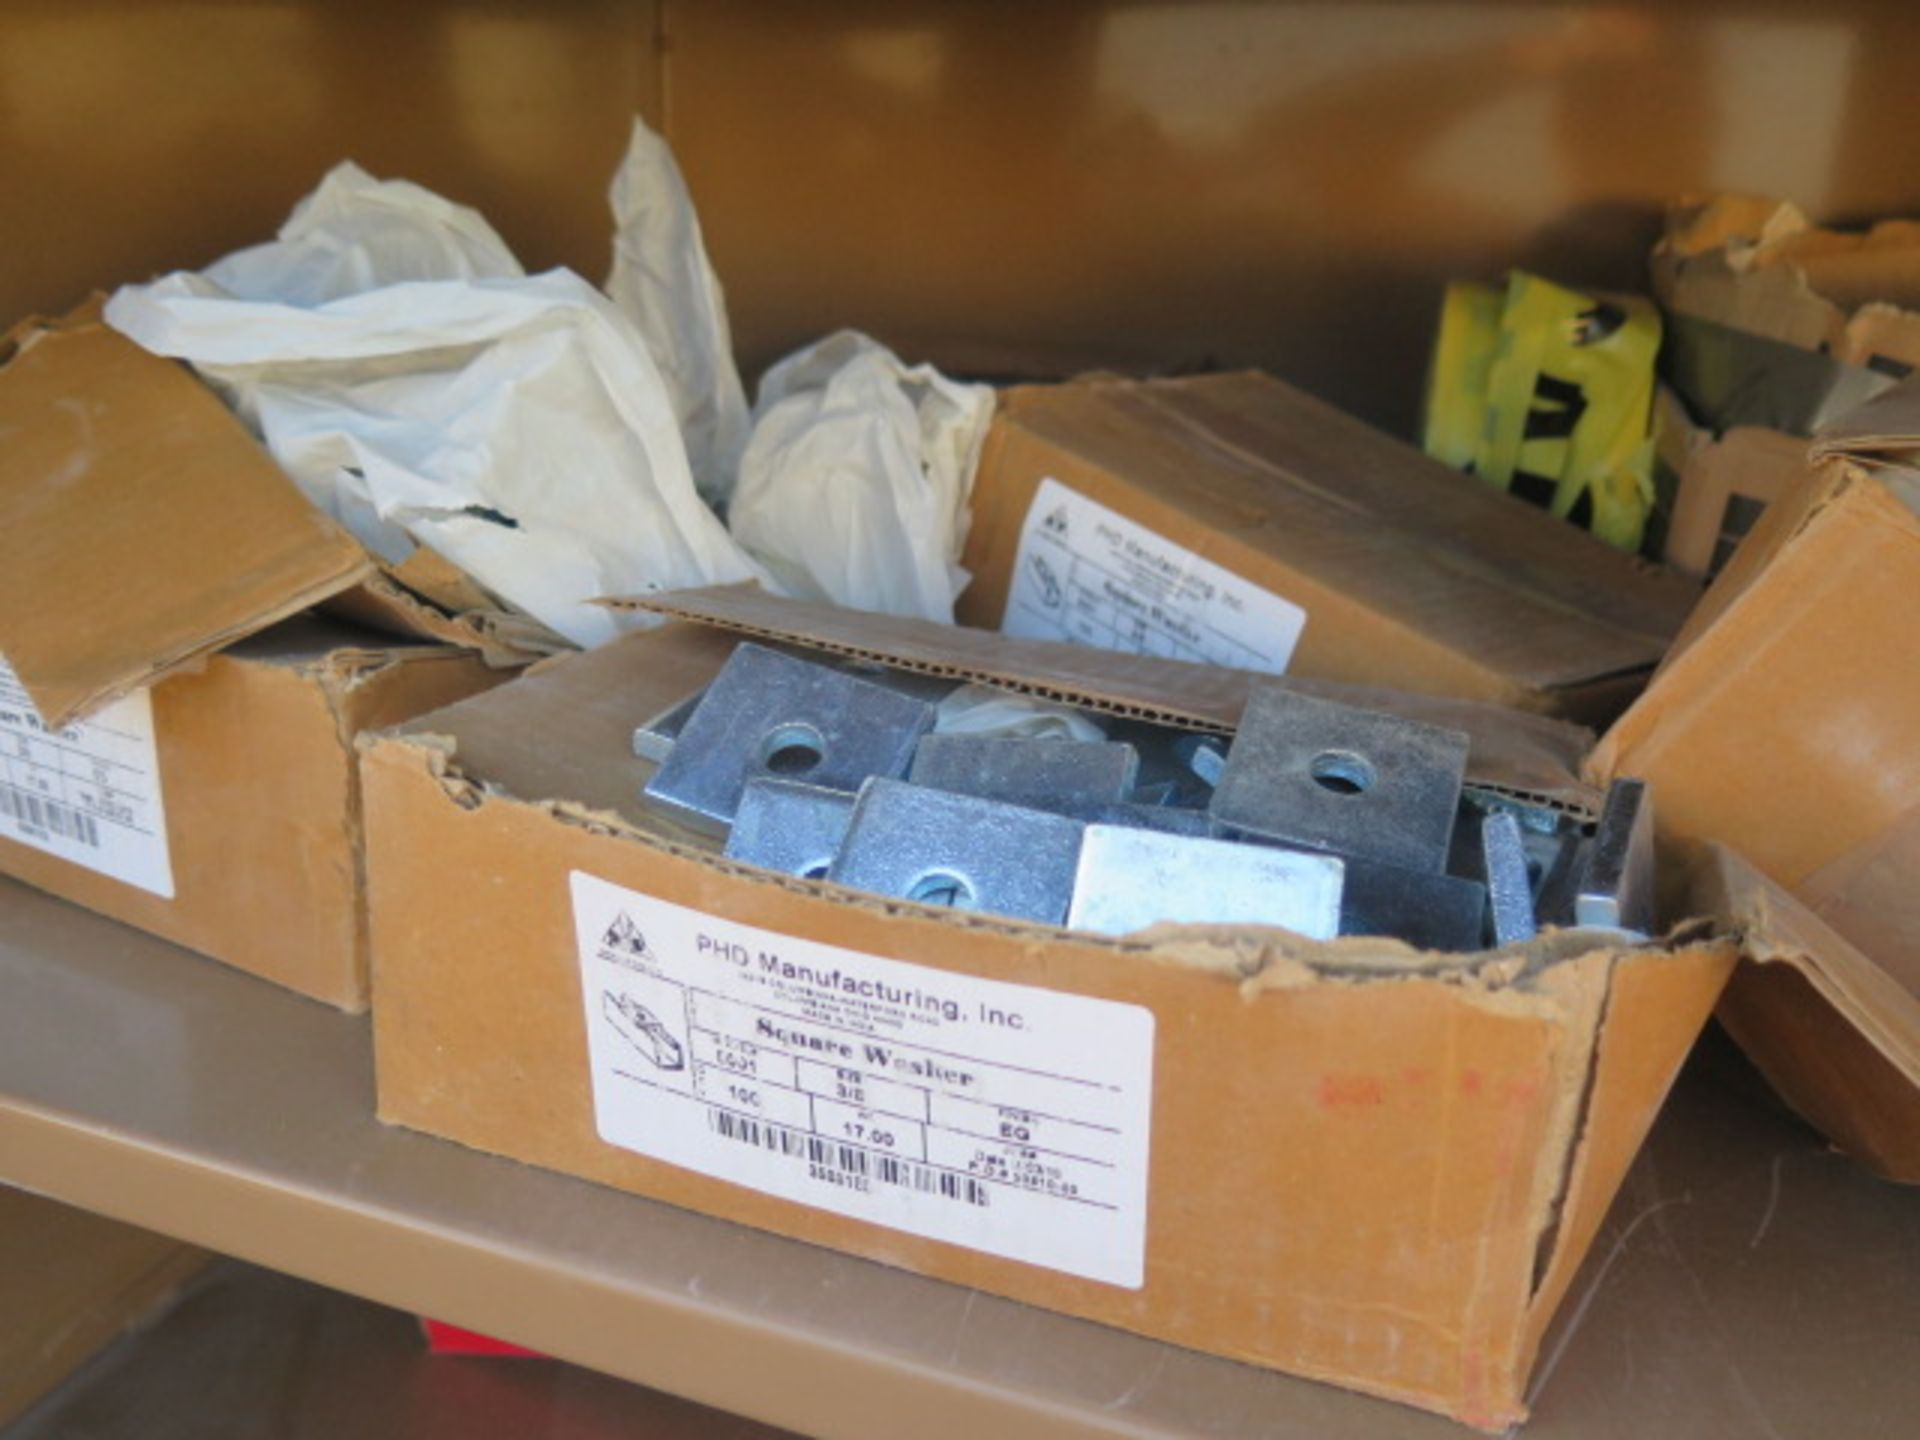 Knaack mdl. 139 Jobmaster Rolling Job Boxw/ Hardware and Supplies (SOLD AS-IS - NO WARRANTY) - Image 6 of 21